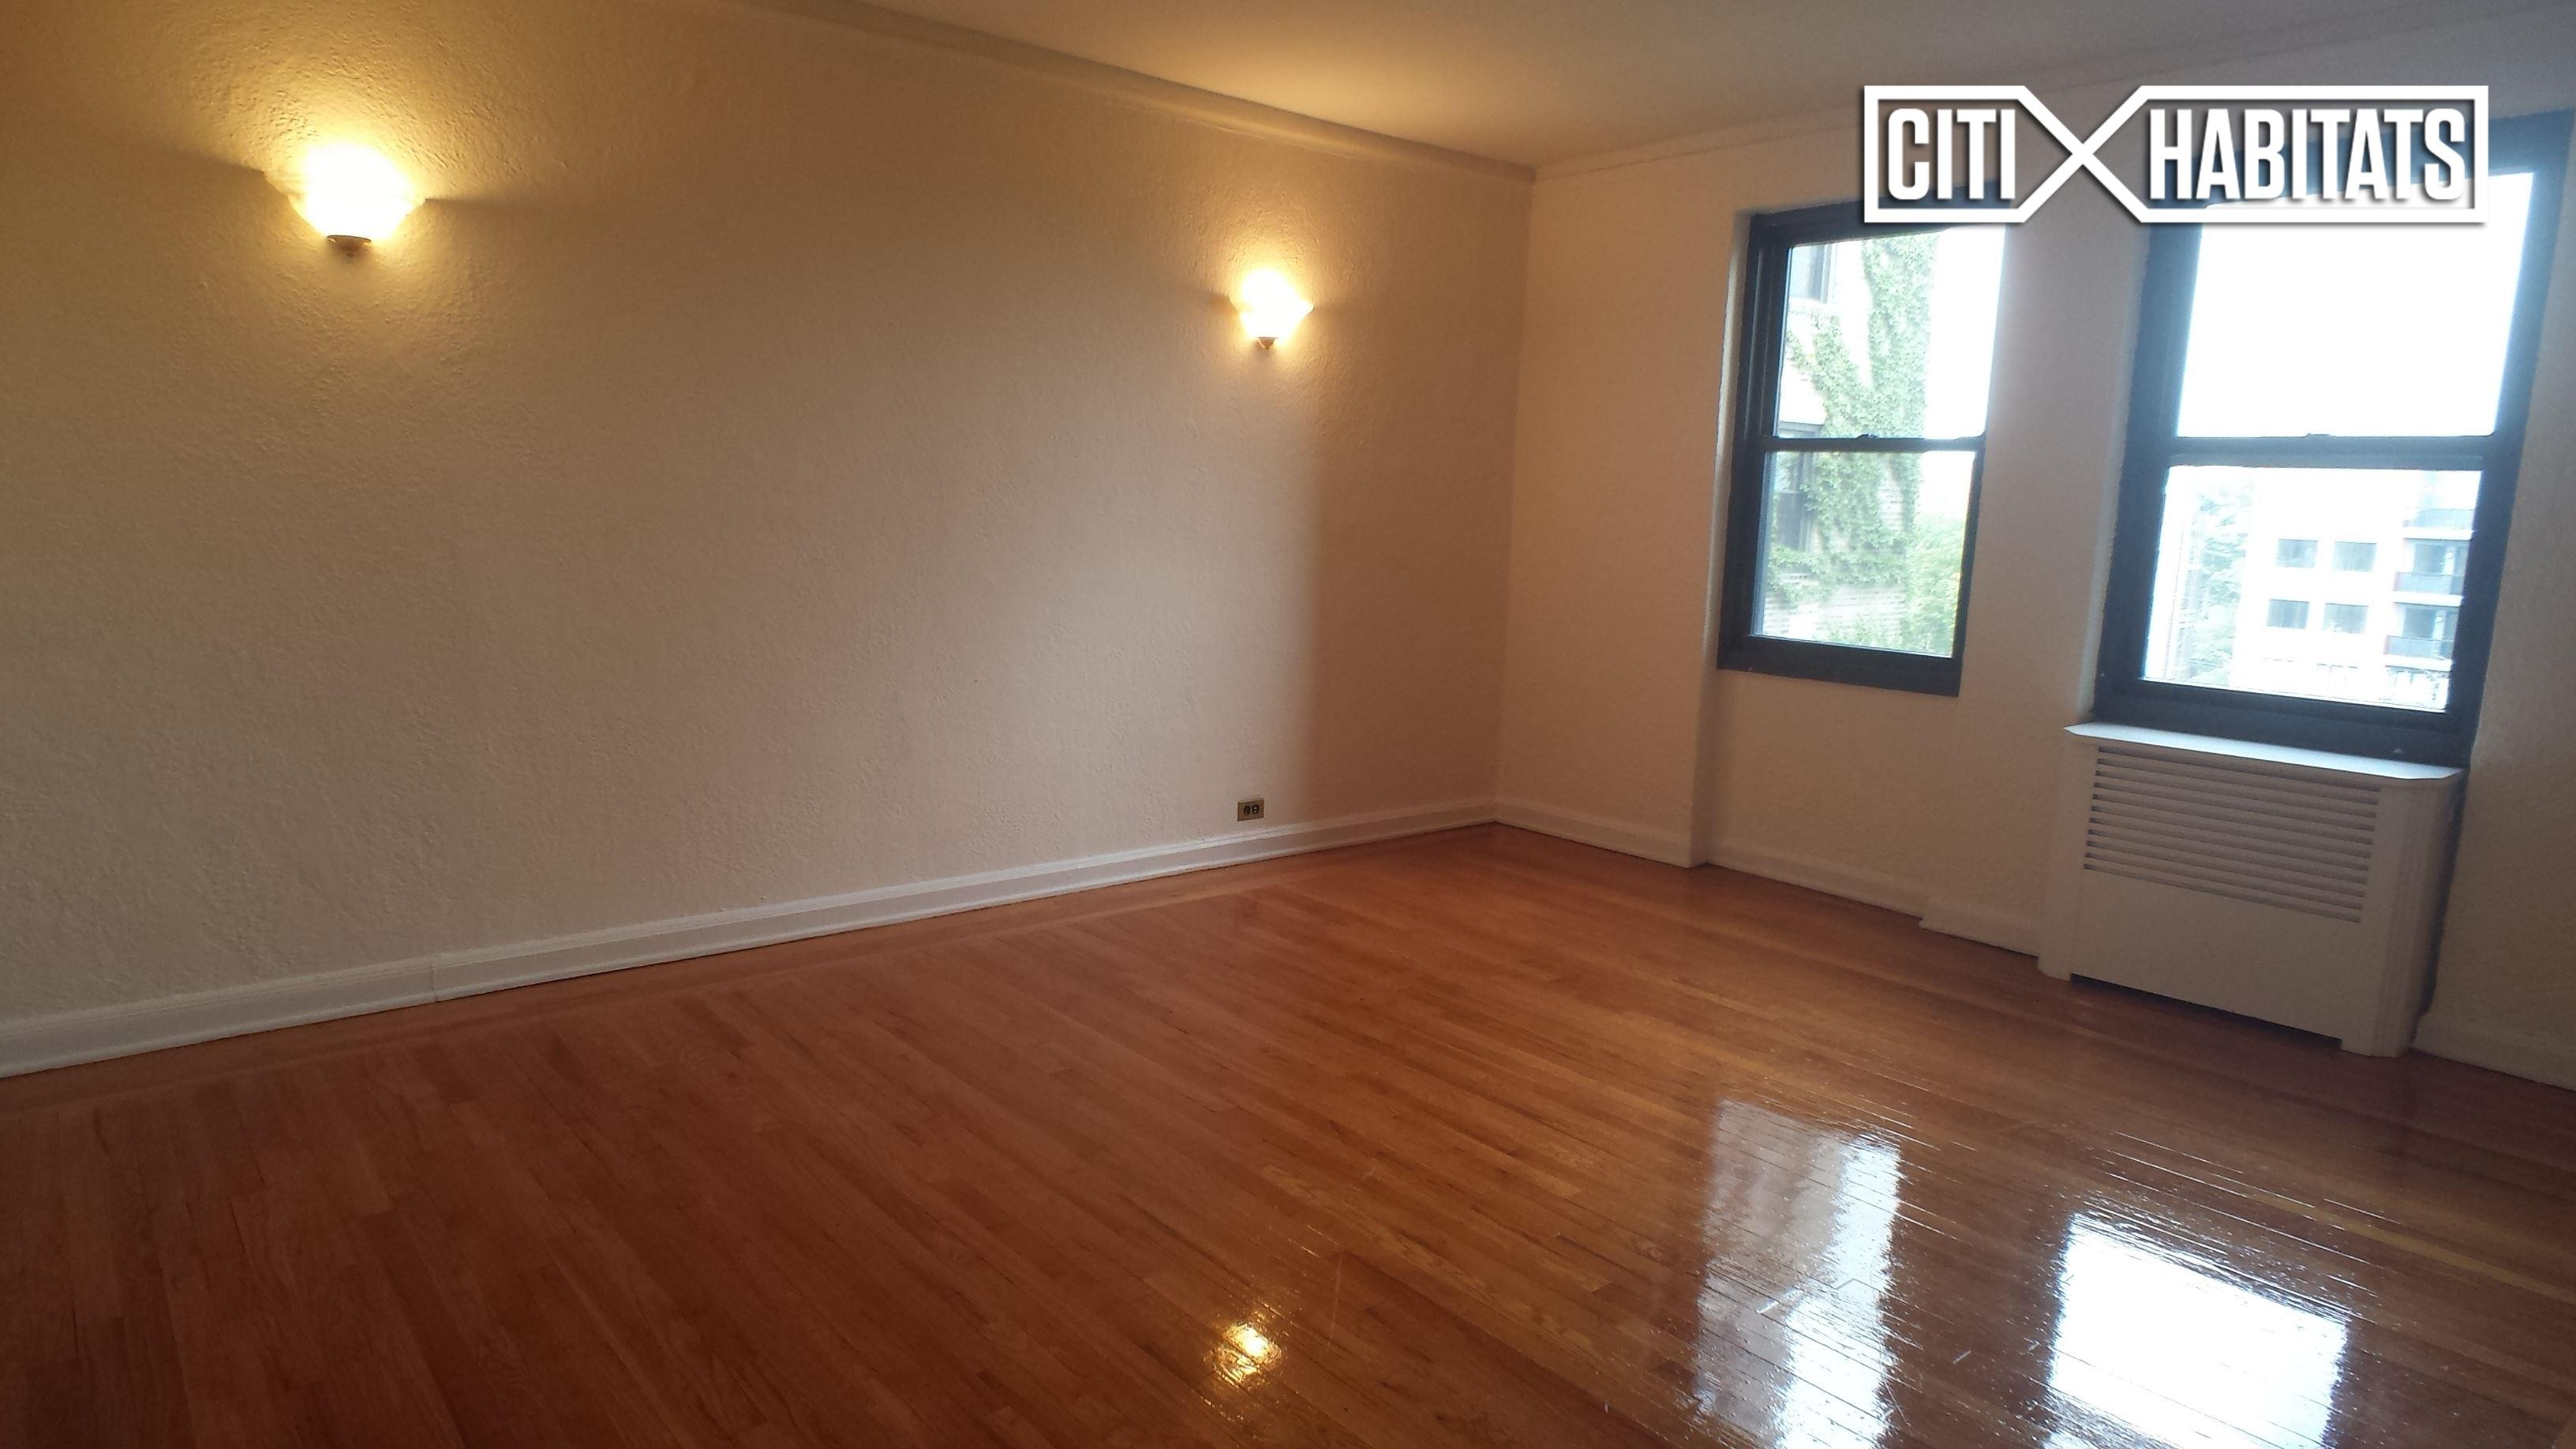 Henry Hudson Pkwy B55 Bronx Ny 10463 2 Bedroom Apartment For Rent For 2 650 Month Zumper